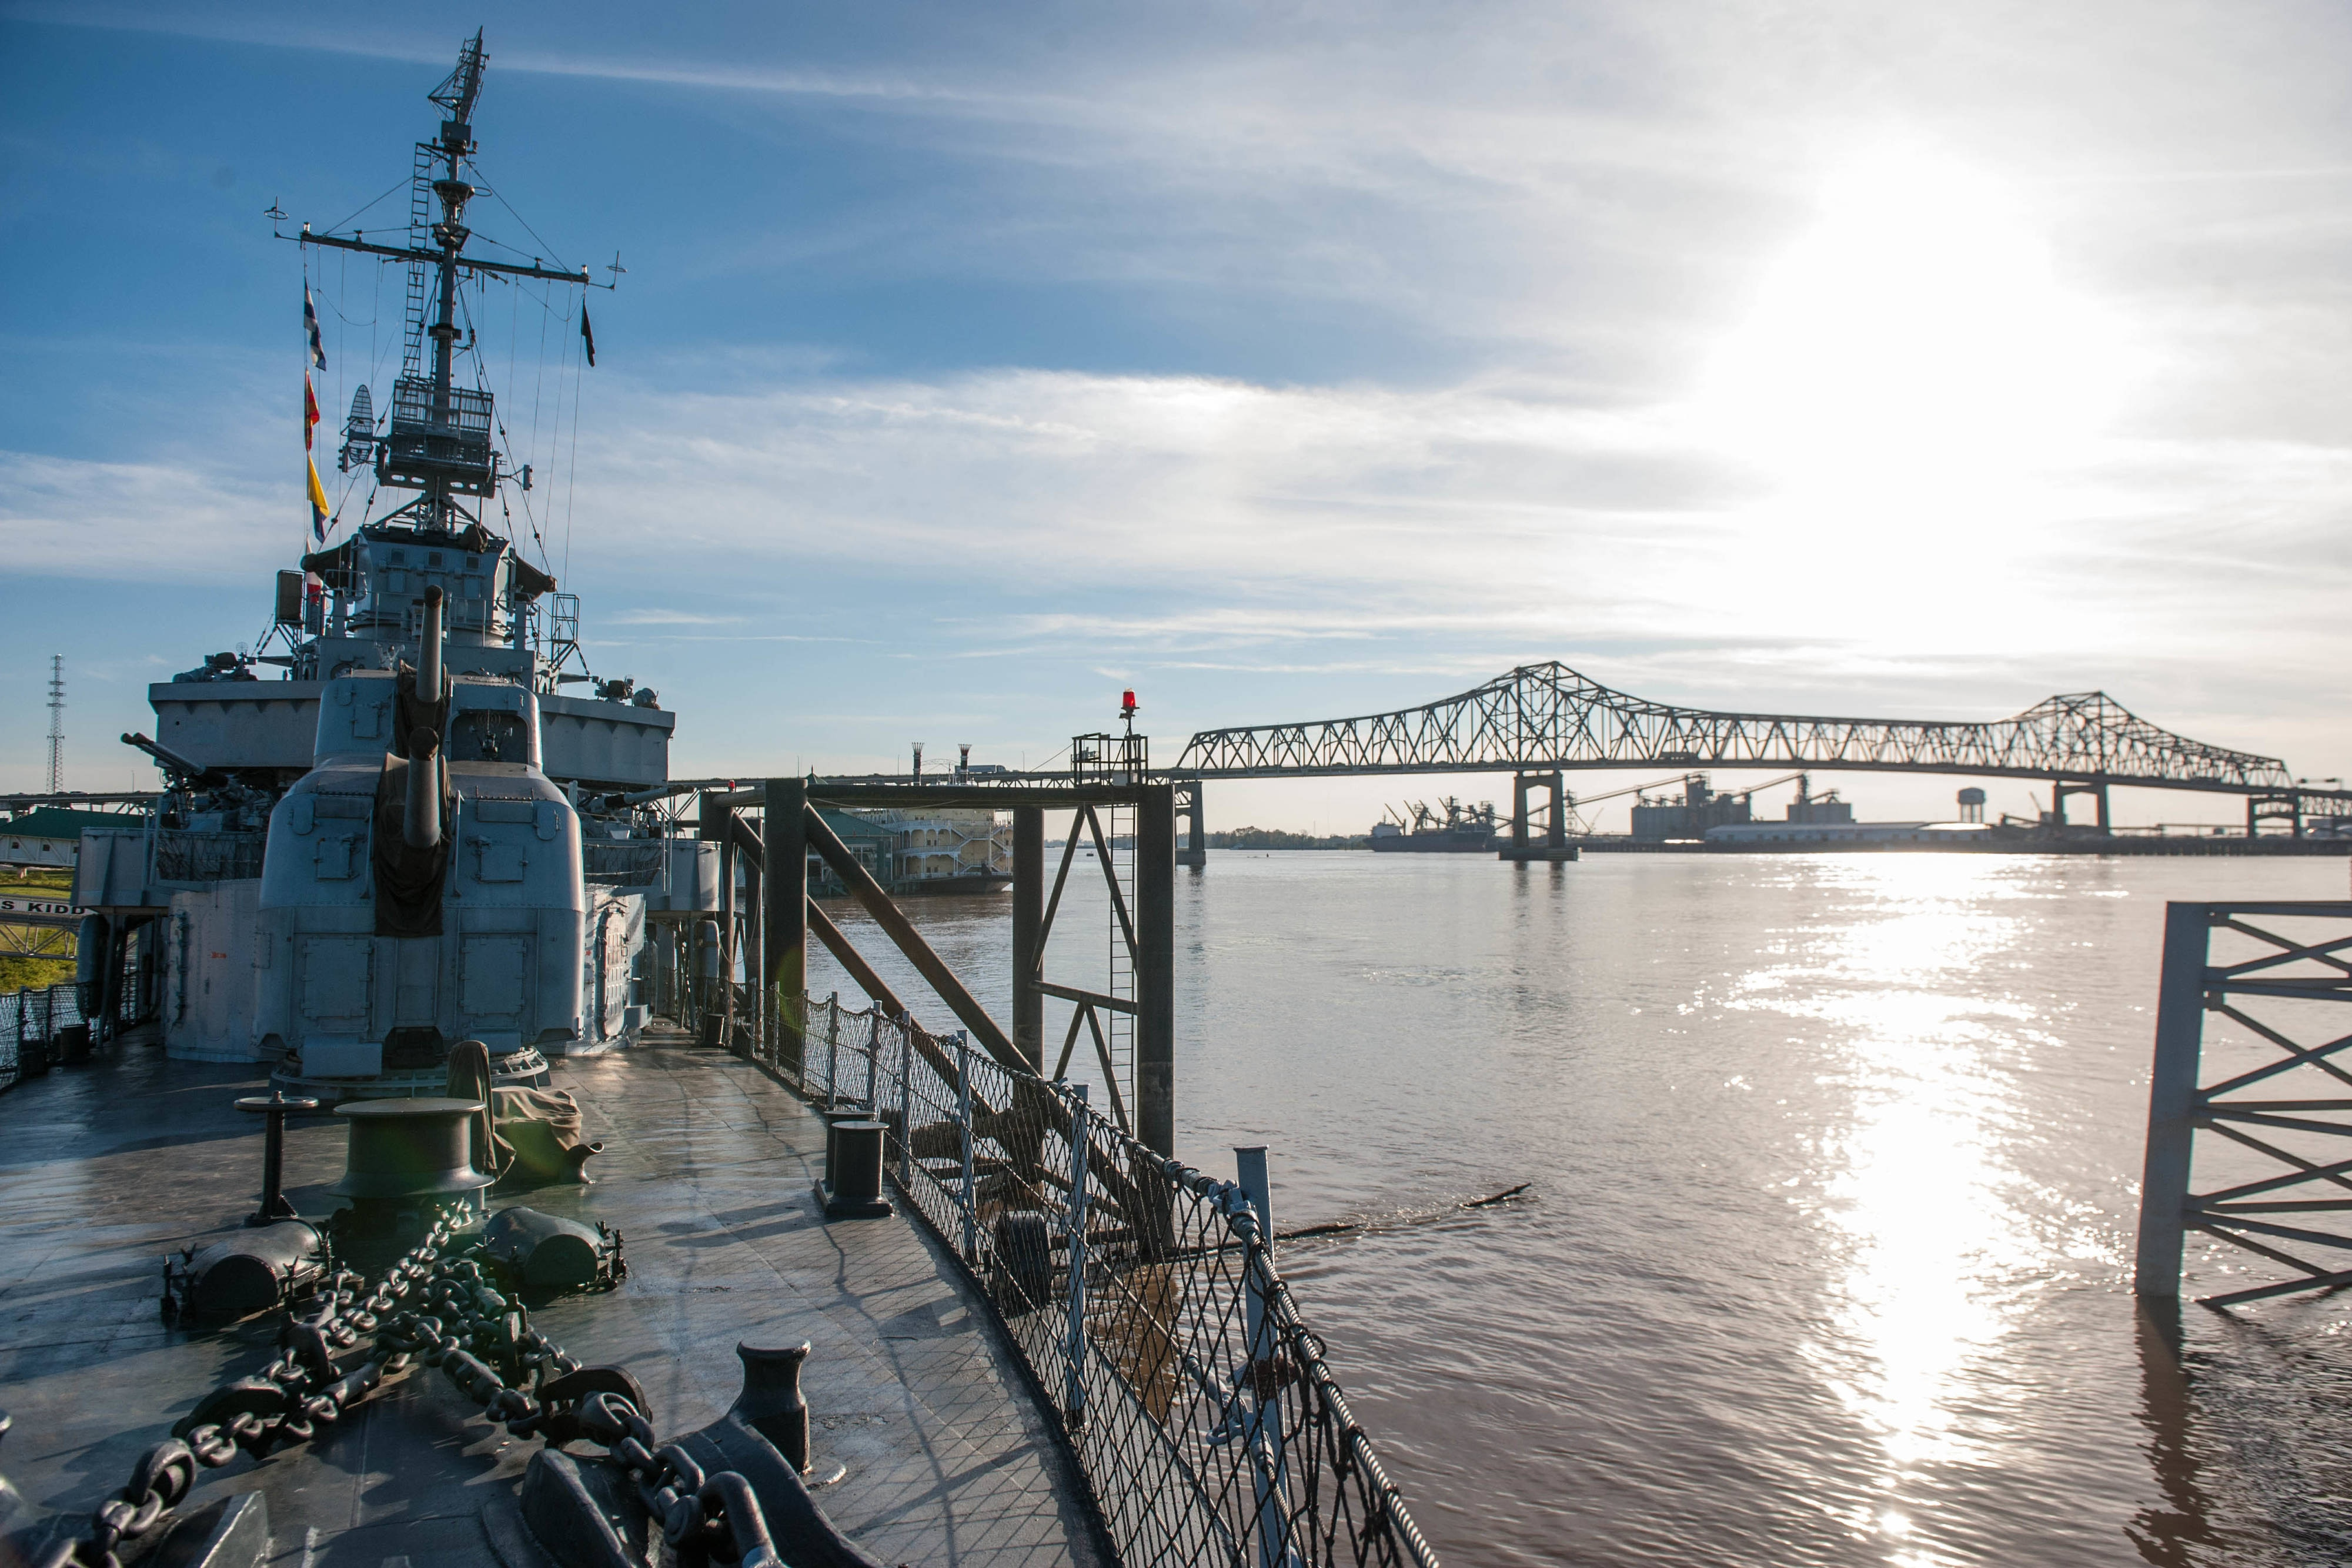 Baton Rouge, Louisiana USS Kidd